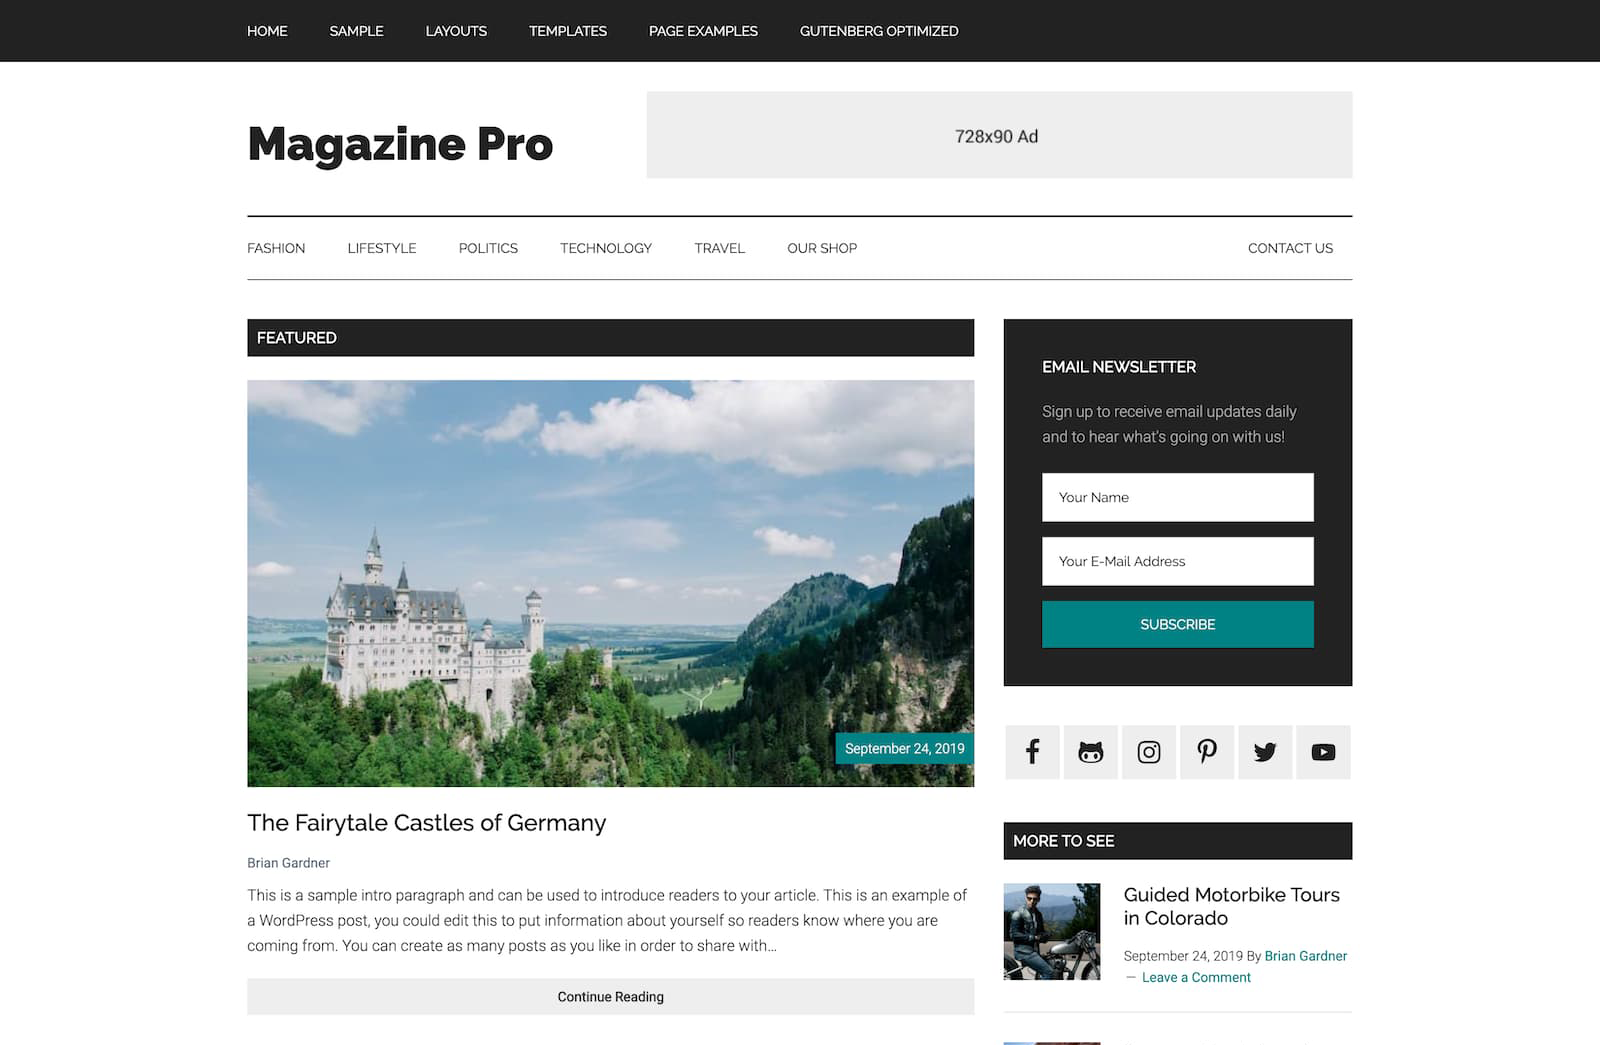 Magazine Pro WordPress Theme Homepage Screenshot